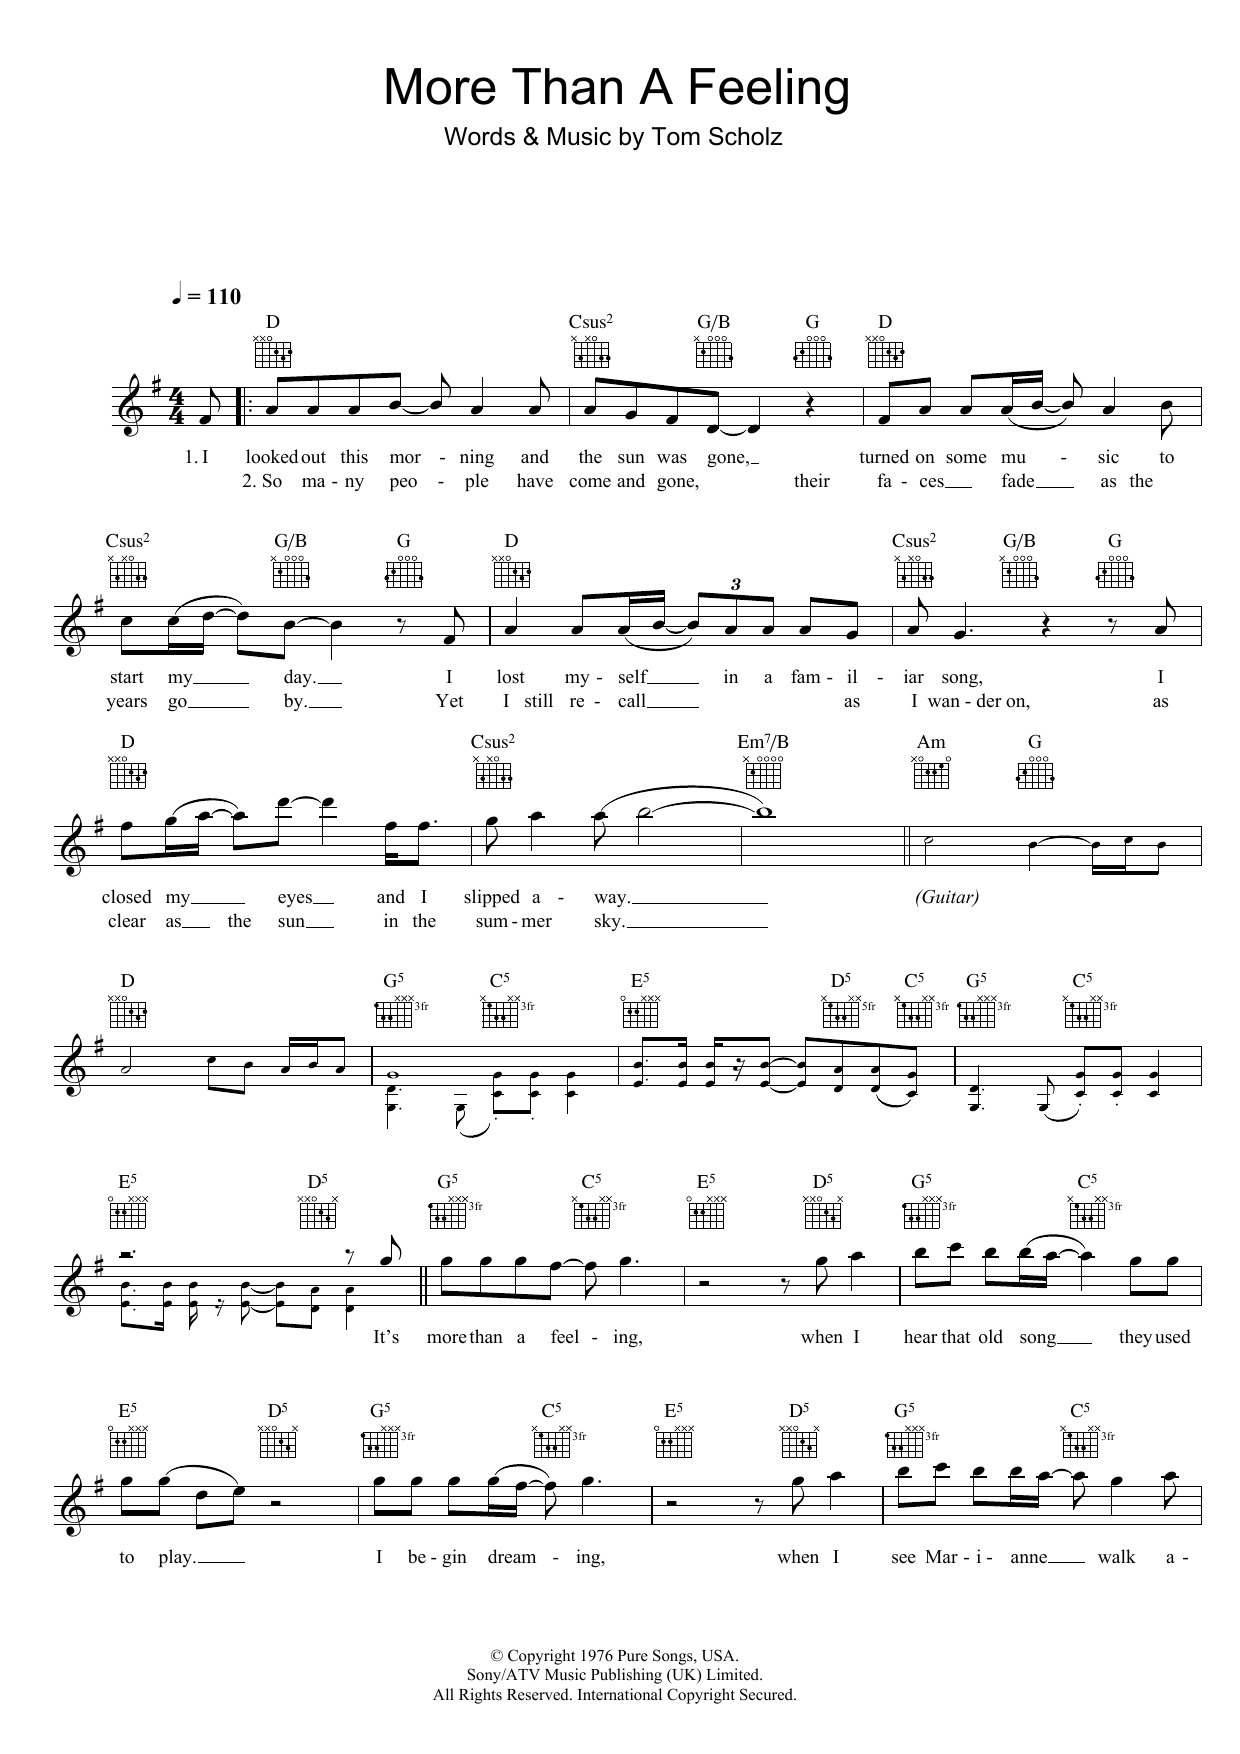 More Than A Feeling Sheet Music Boston Melody Line Lyrics Chords